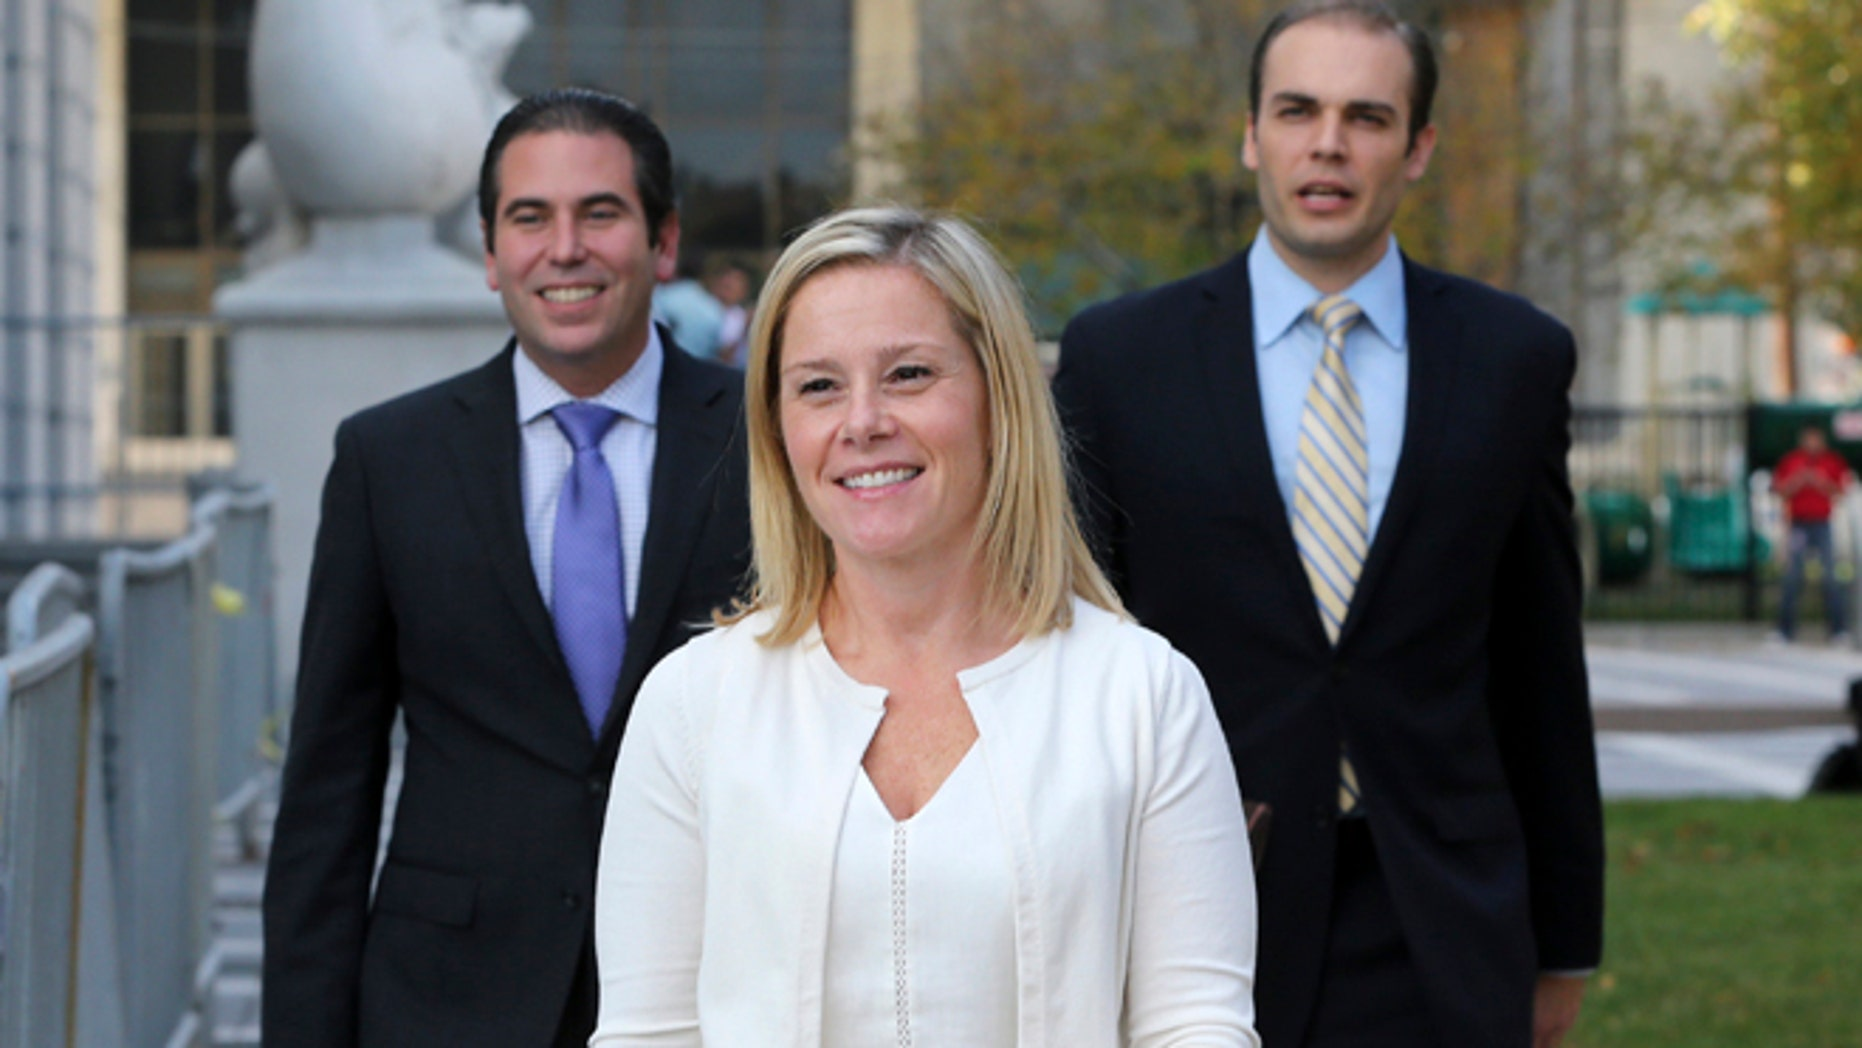 "FILE - In this Wednesday, Oct. 19, 2016 file photo, Gov. Chris Christie's former Deputy Chief of Staff Bridget Anne Kelly, center, leaves Martin Luther King Jr. Courthouse after a hearing, in Newark, N.J. Kelly, who prosecutors say sent the ""time for some traffic problems"" email that started the George Washington Bridge lane-closing scandal is set to testify in her own defense. Kelly is expected to take the stand later Friday, Oct. 21, 2016, in federal court in Newark. (AP Photo/Mel Evans, File)"